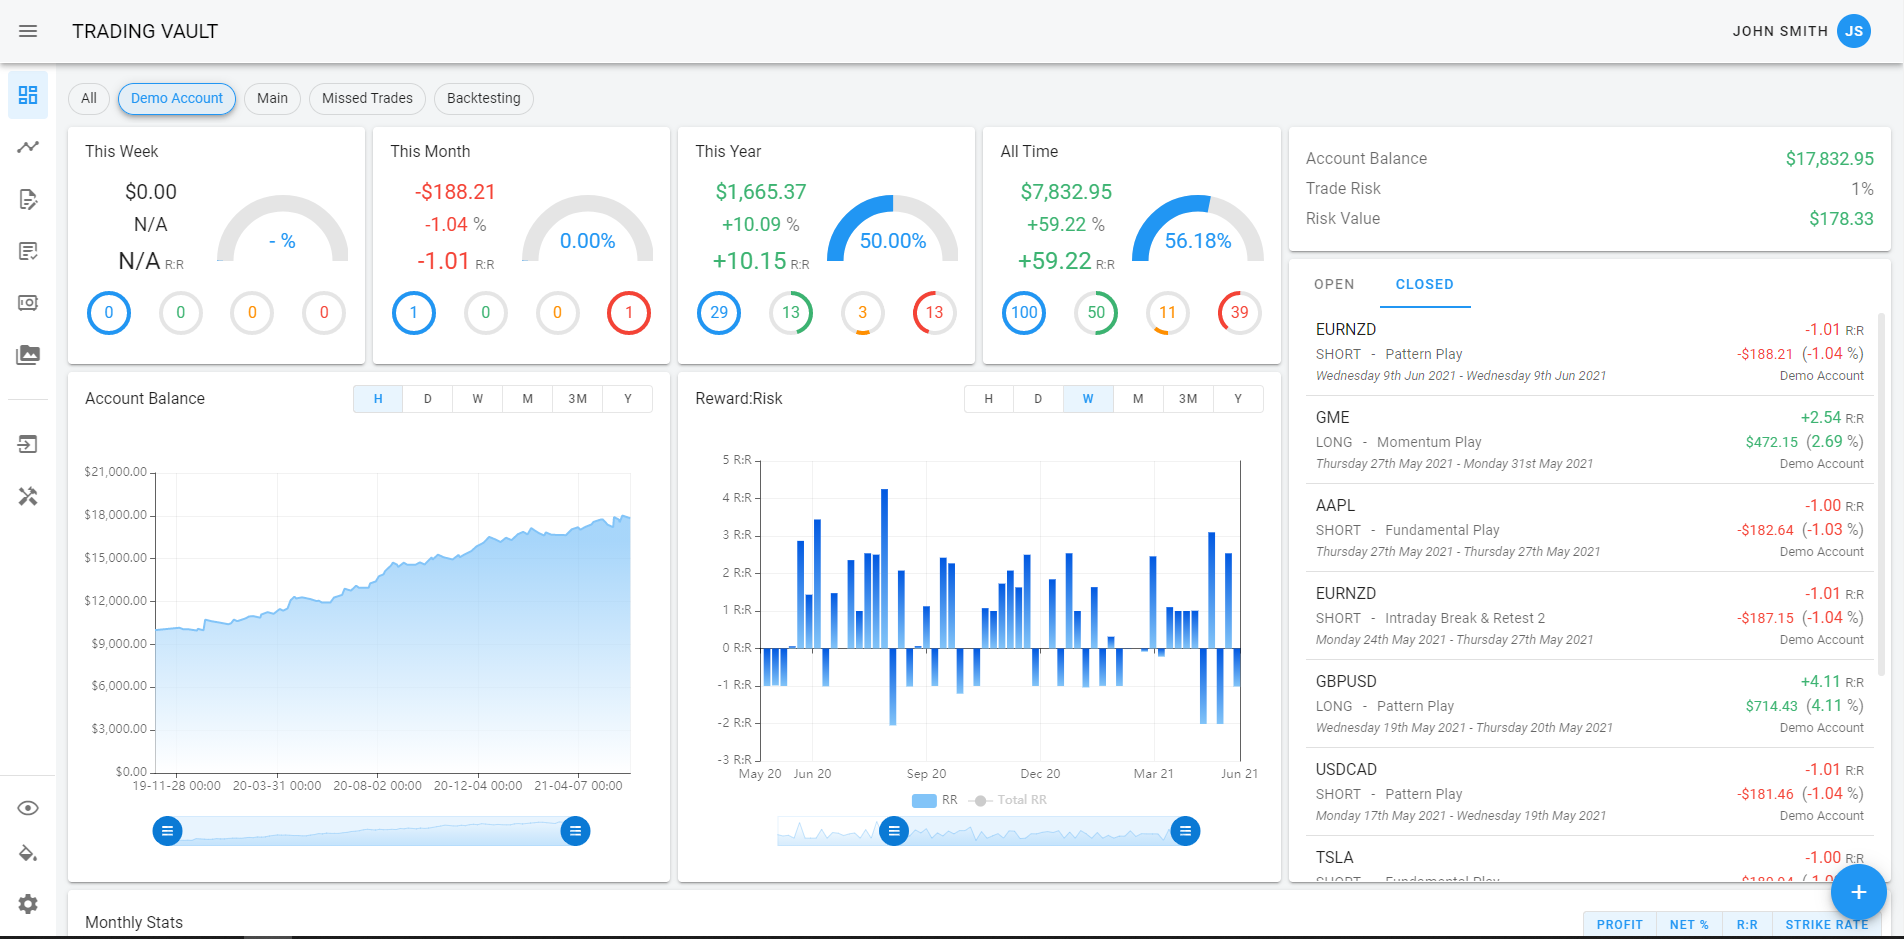 Trading Vault Dashboard using the new light theme.